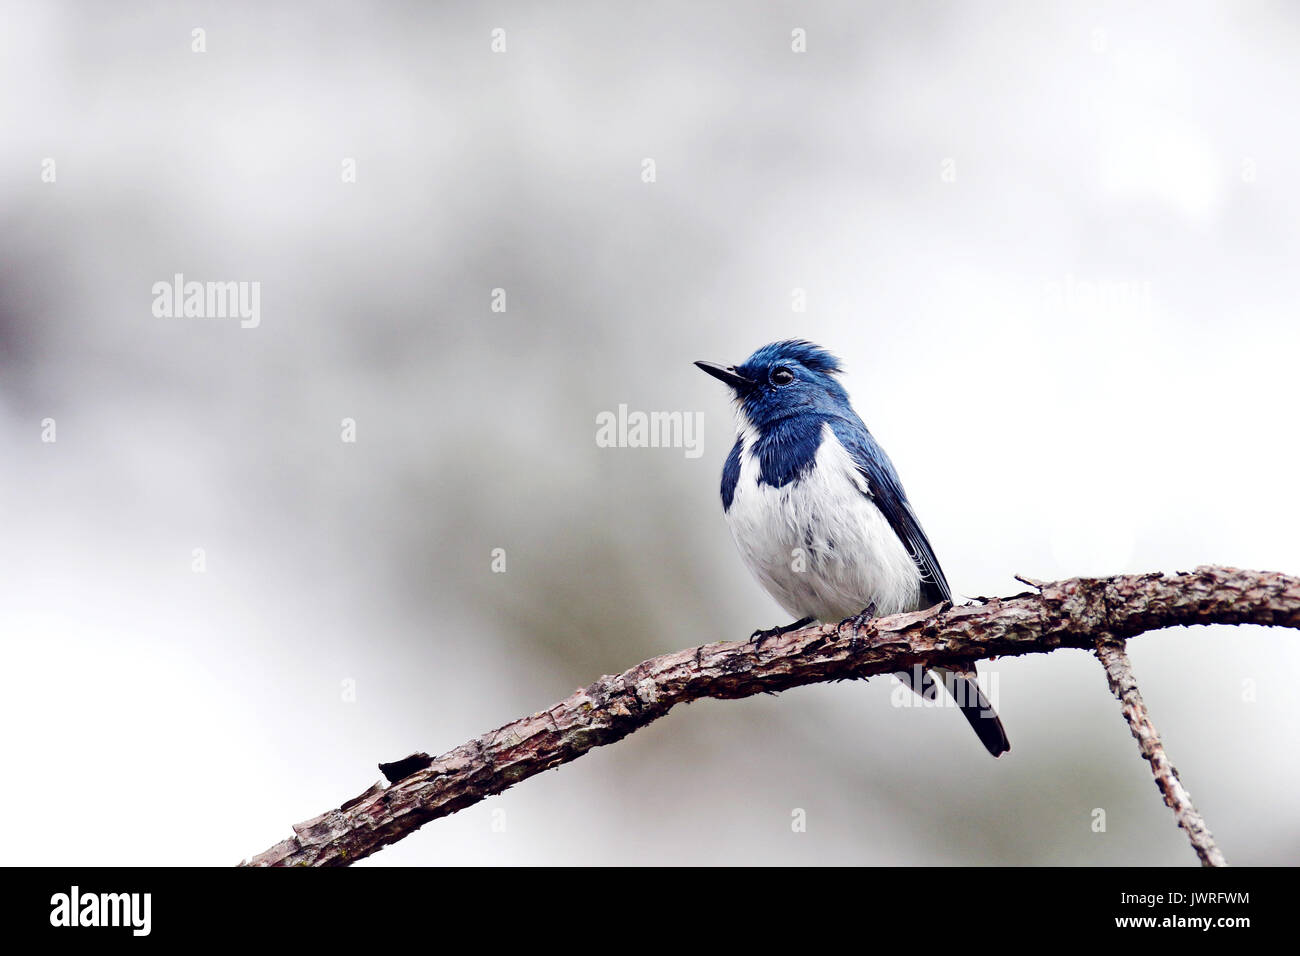 A beautiful bird in the wild Asia. White-browed blue flycatcher or Ultramarine flycatcher (Ficedula superciliaris) the beautiful blue bird perching on - Stock Image